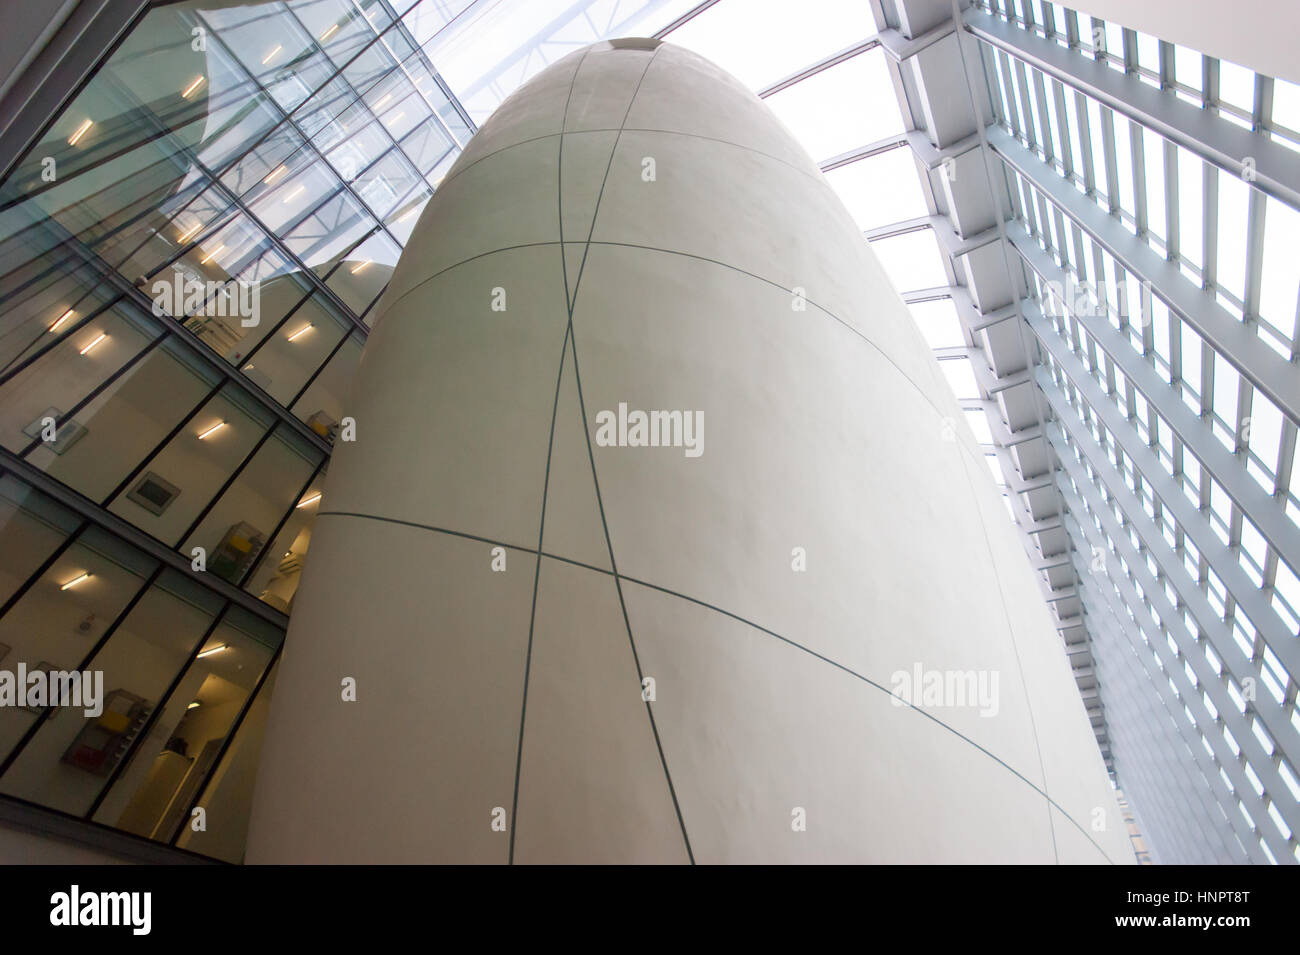 The Cocoon in the Darwin Centre of the Natural History Museum in London designed by C.F. Møller Architects, - Stock Image